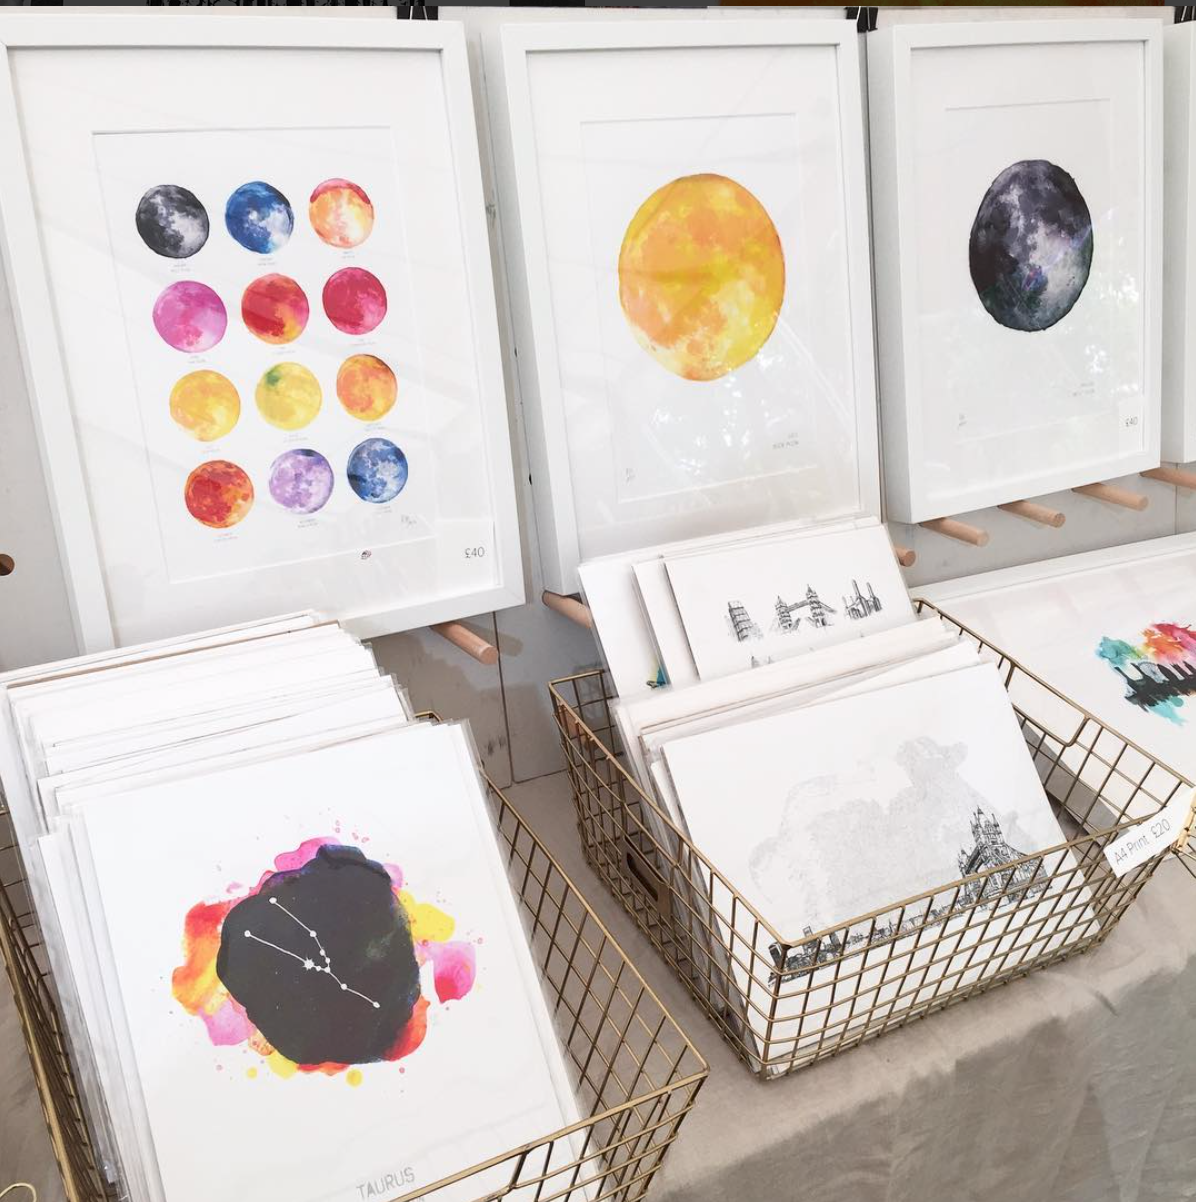 art prints by drawn together art collective display at a craft fair stall